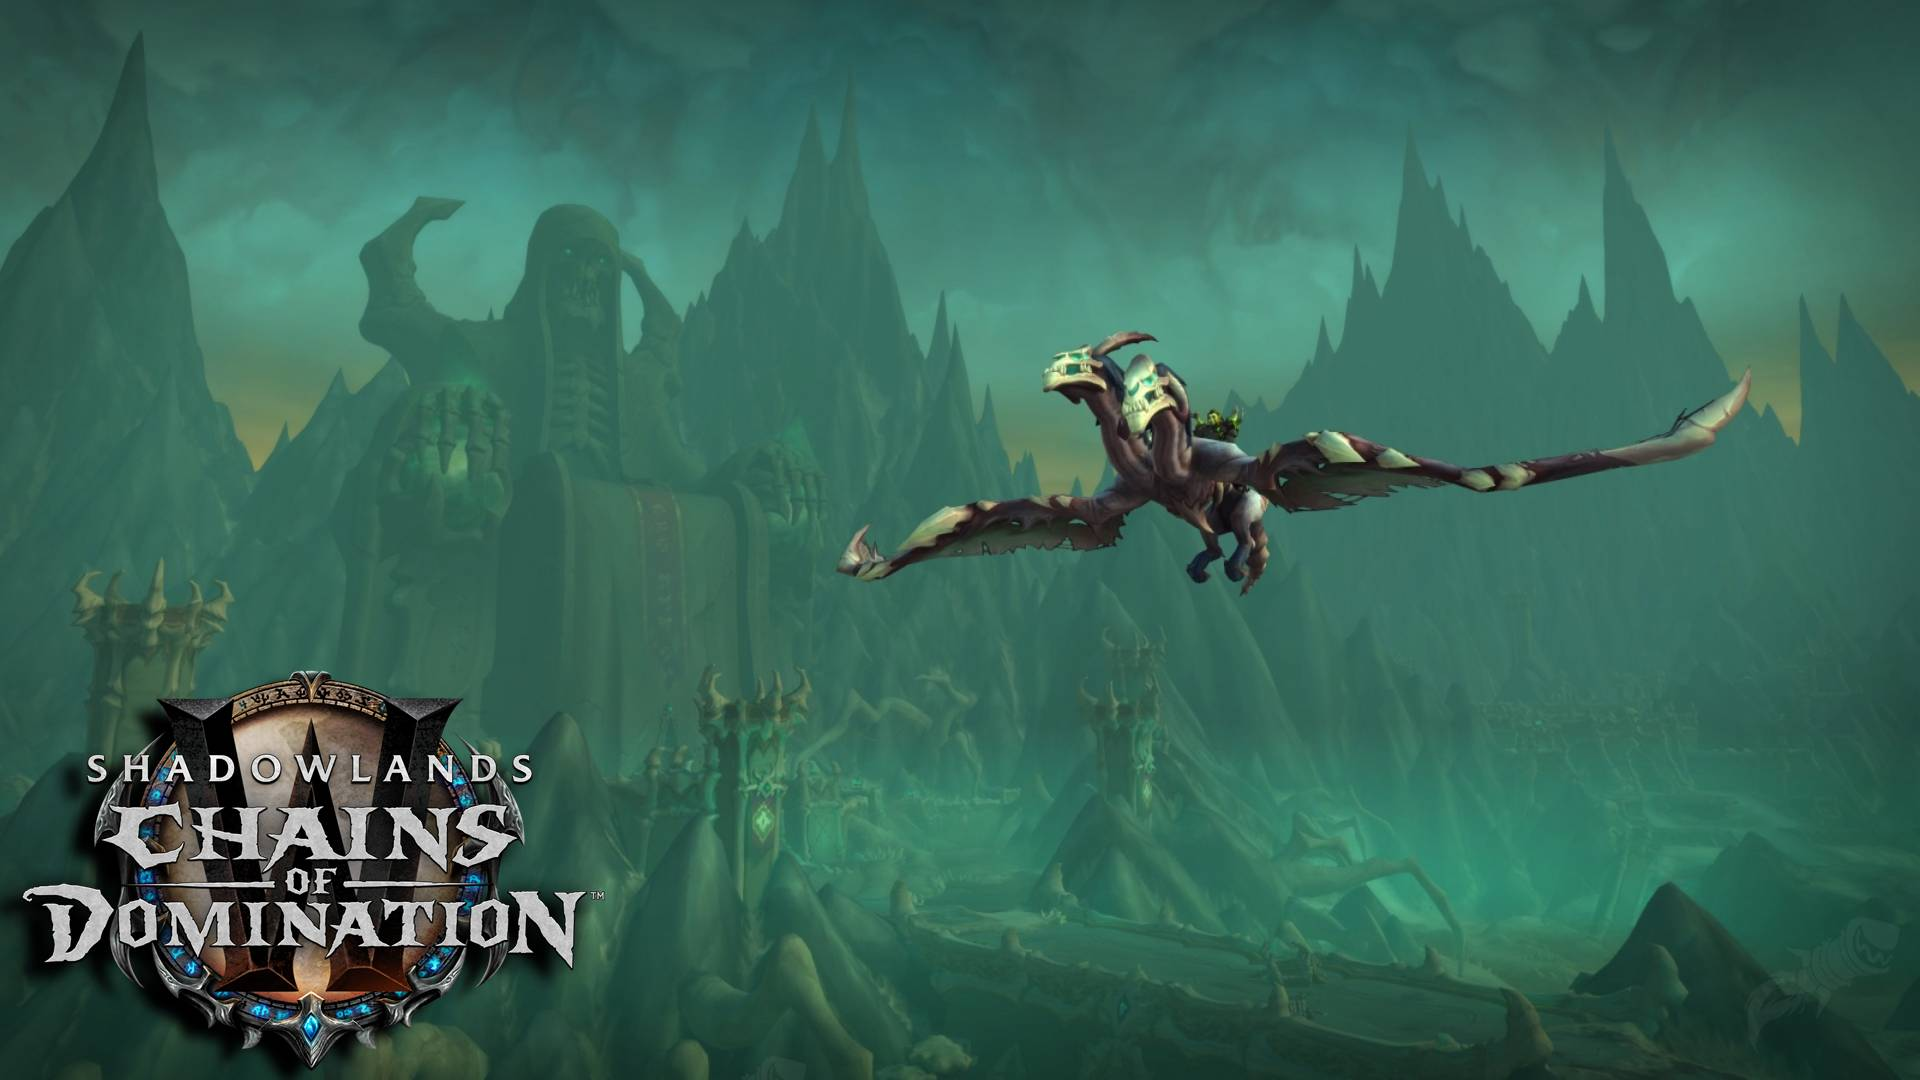 vol-fly-date-sortie-wow-shadowlands